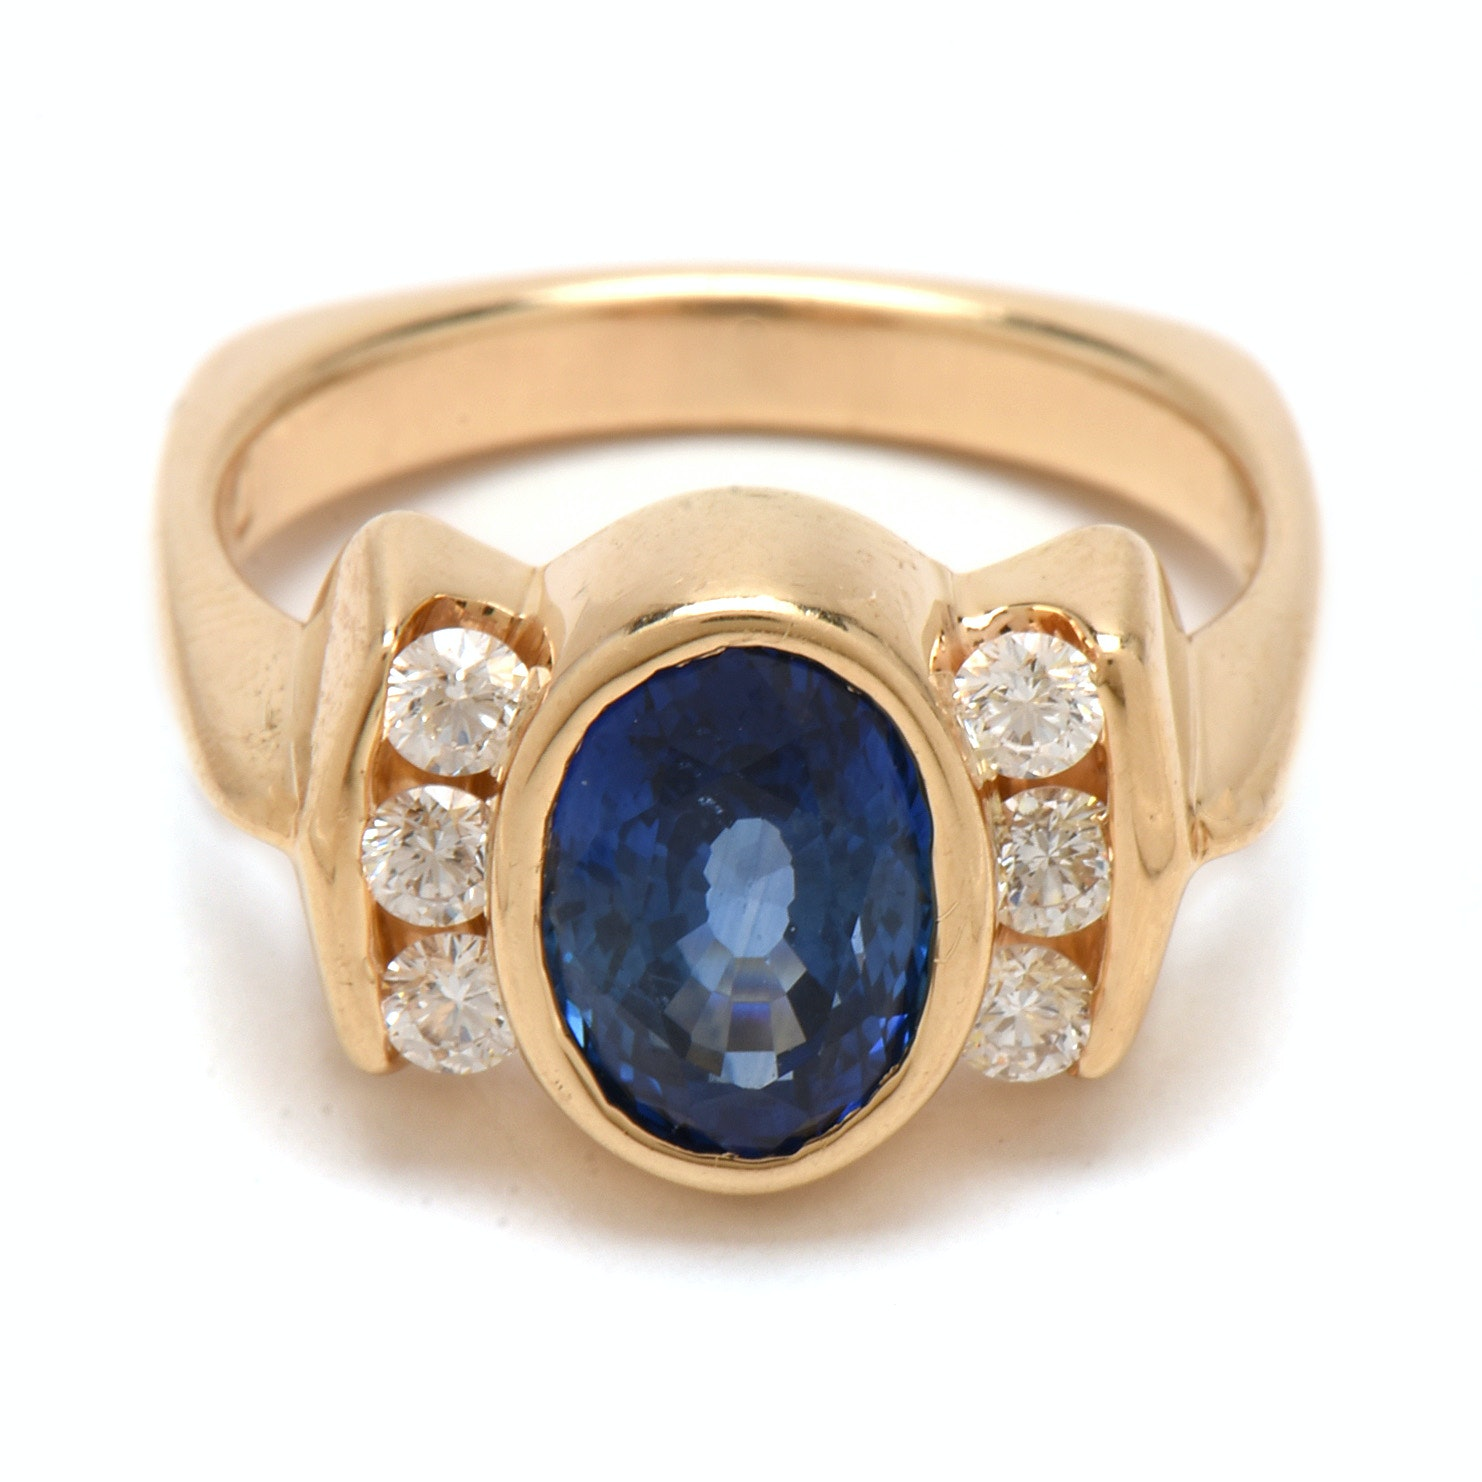 14K Yellow Gold 2.50 Carat Natural Sapphire and Diamond Ring